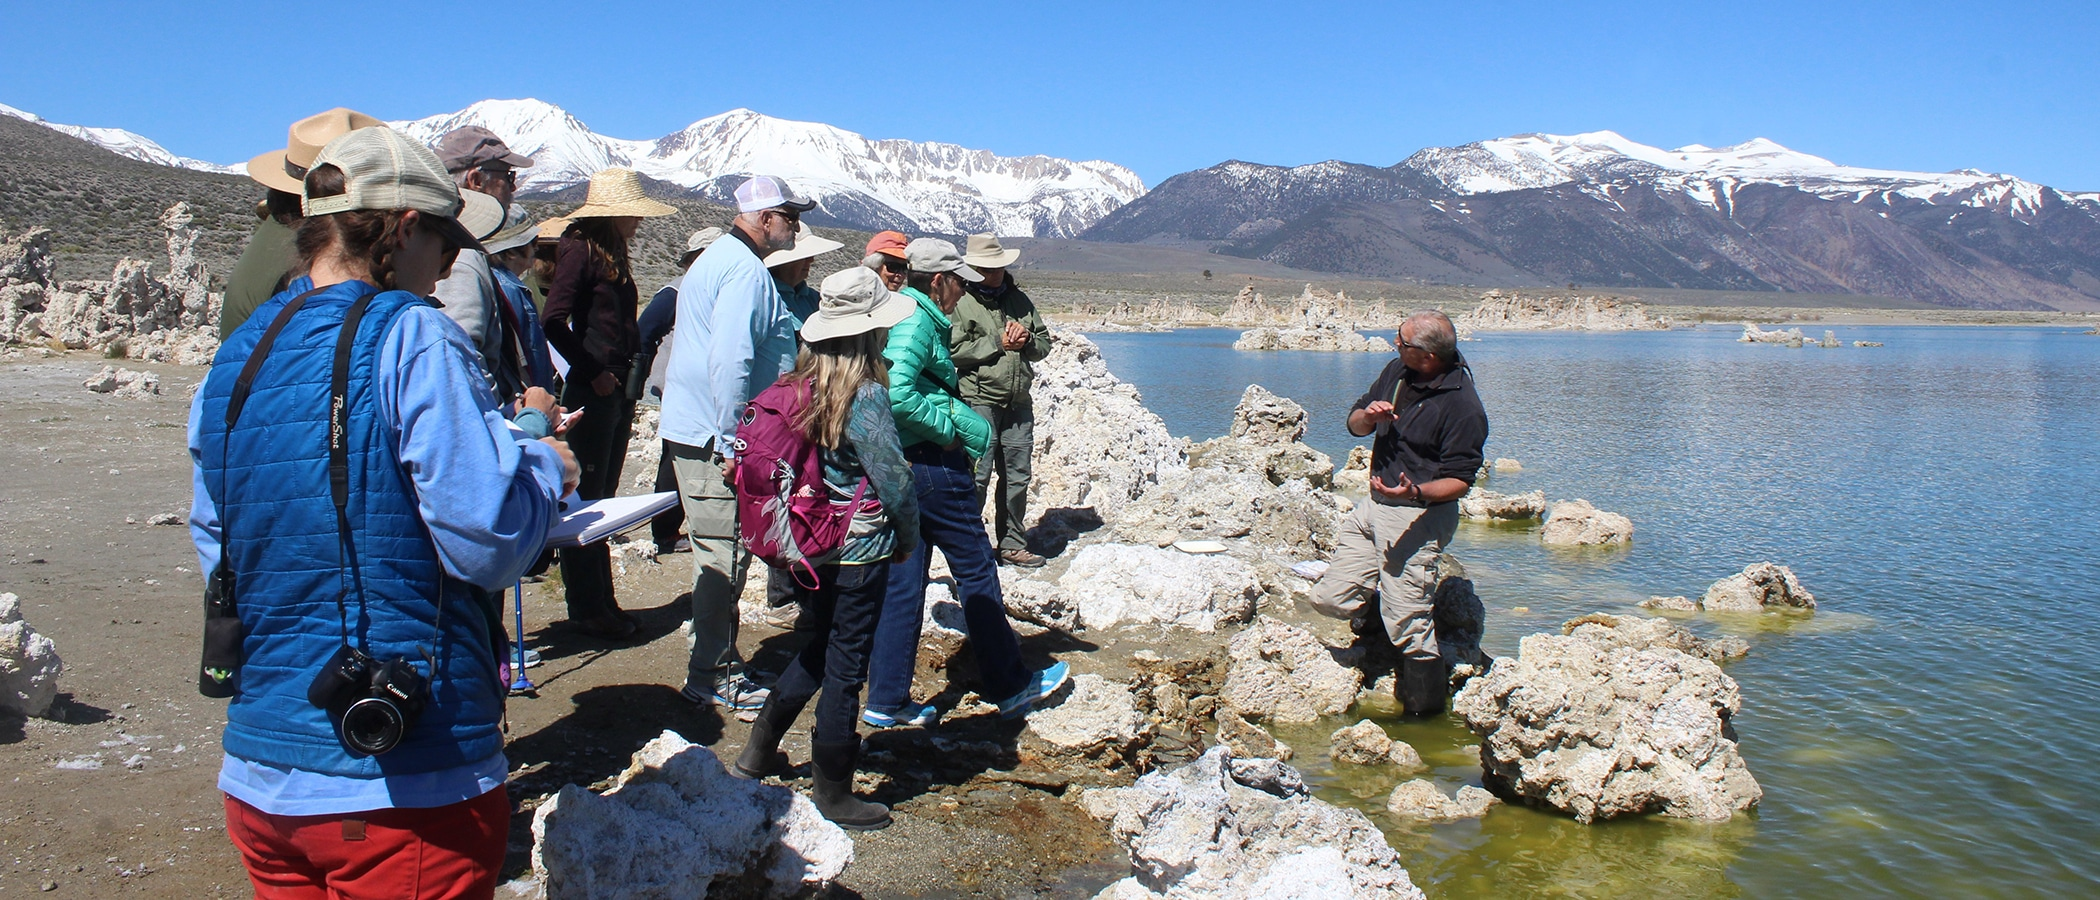 About 15 people standing on the Mono Lake shoreline listening to a person standing in Mono Lake leading a tour on a beautiful sunny day with the snowy Sierra Nevada in the background.